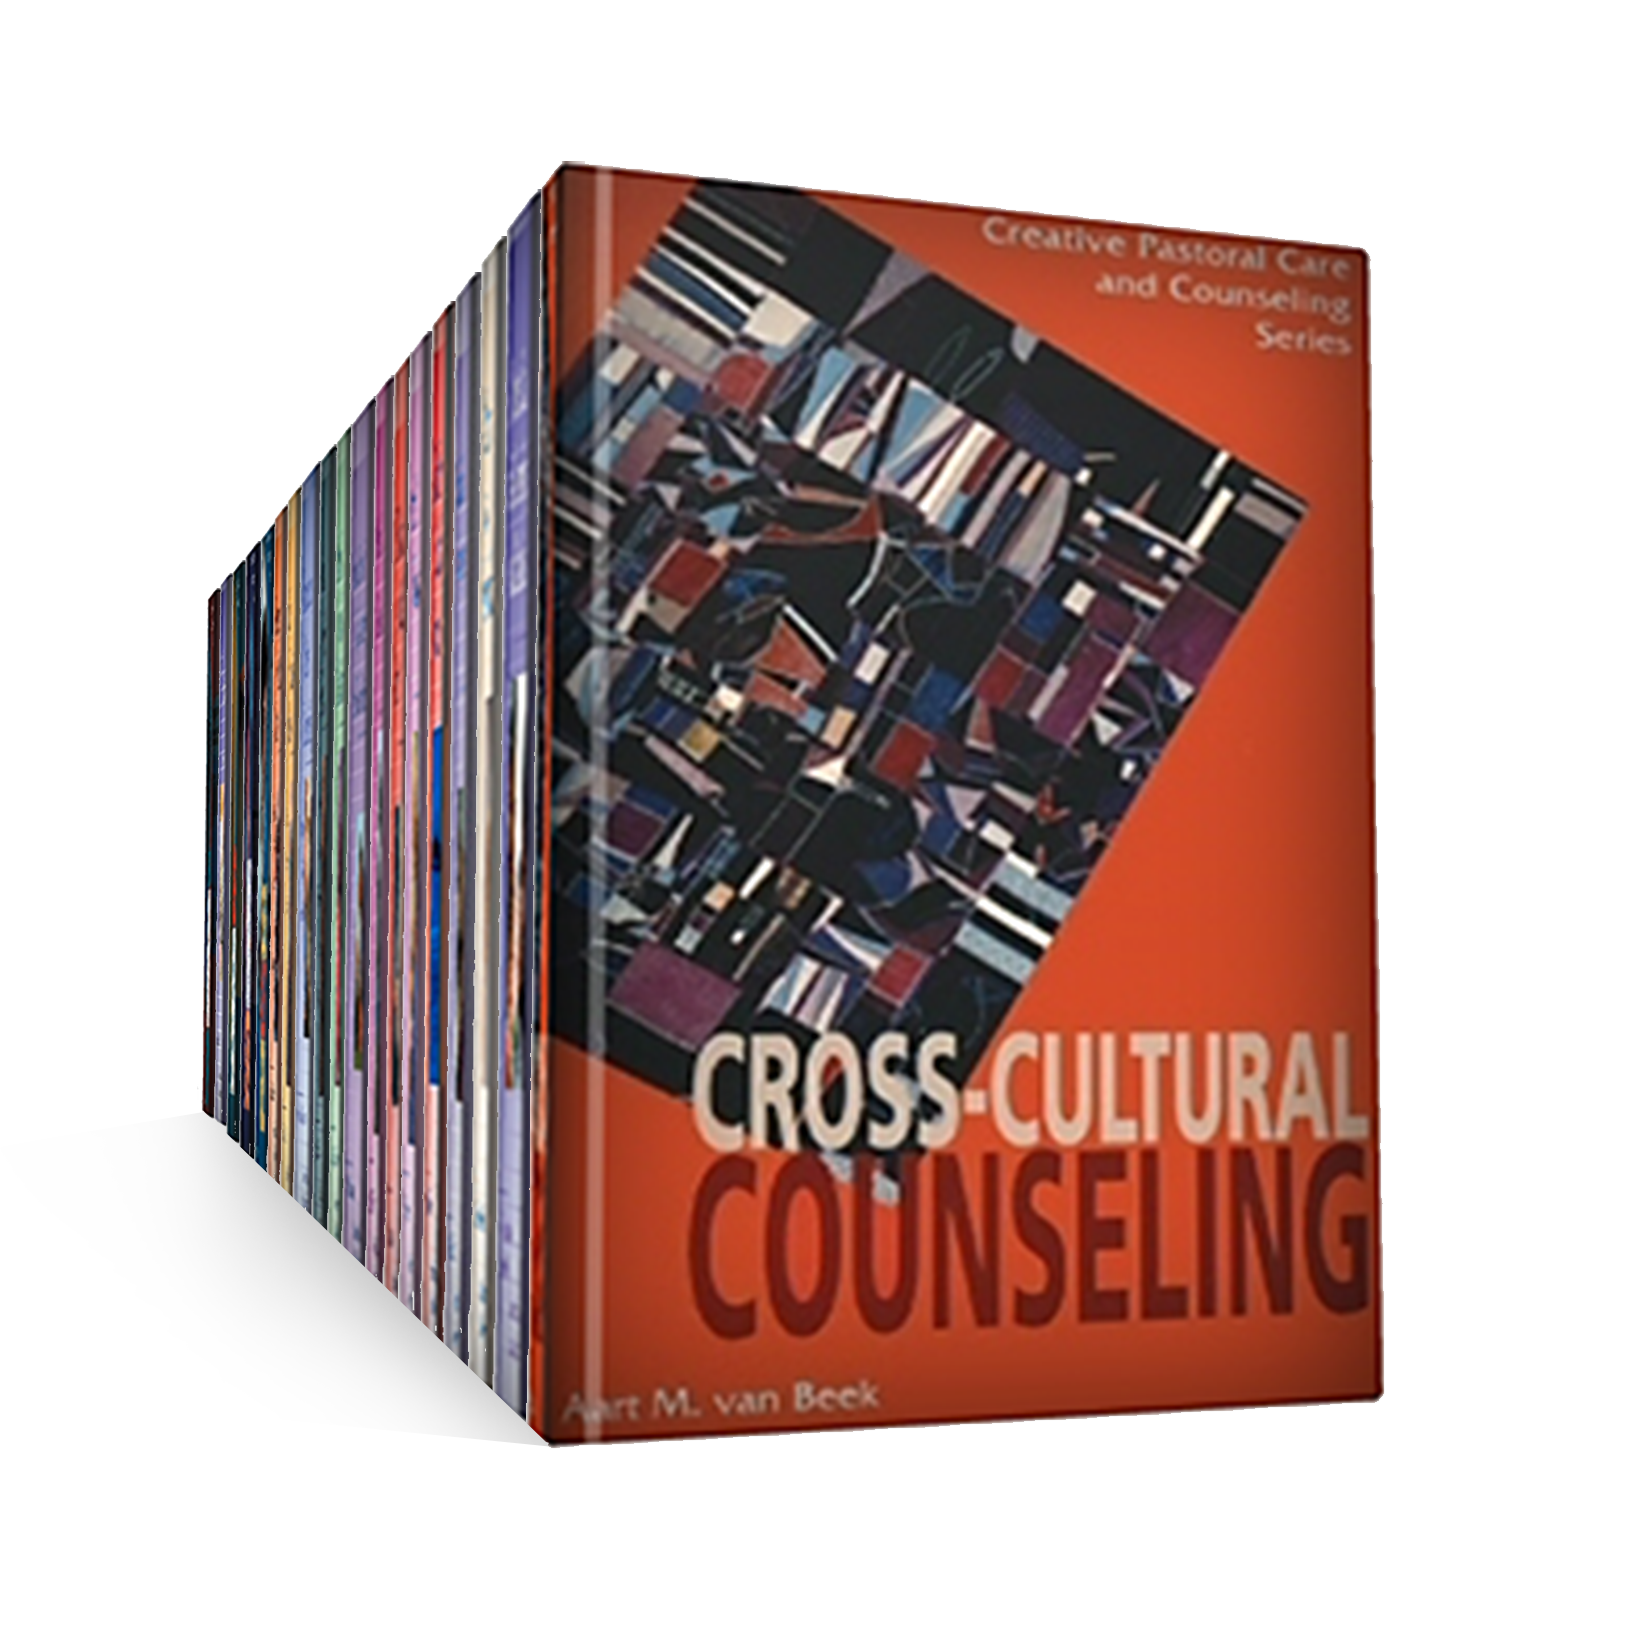 Fortress Press Creative Pastoral Care and Counseling Series (19 vols.)